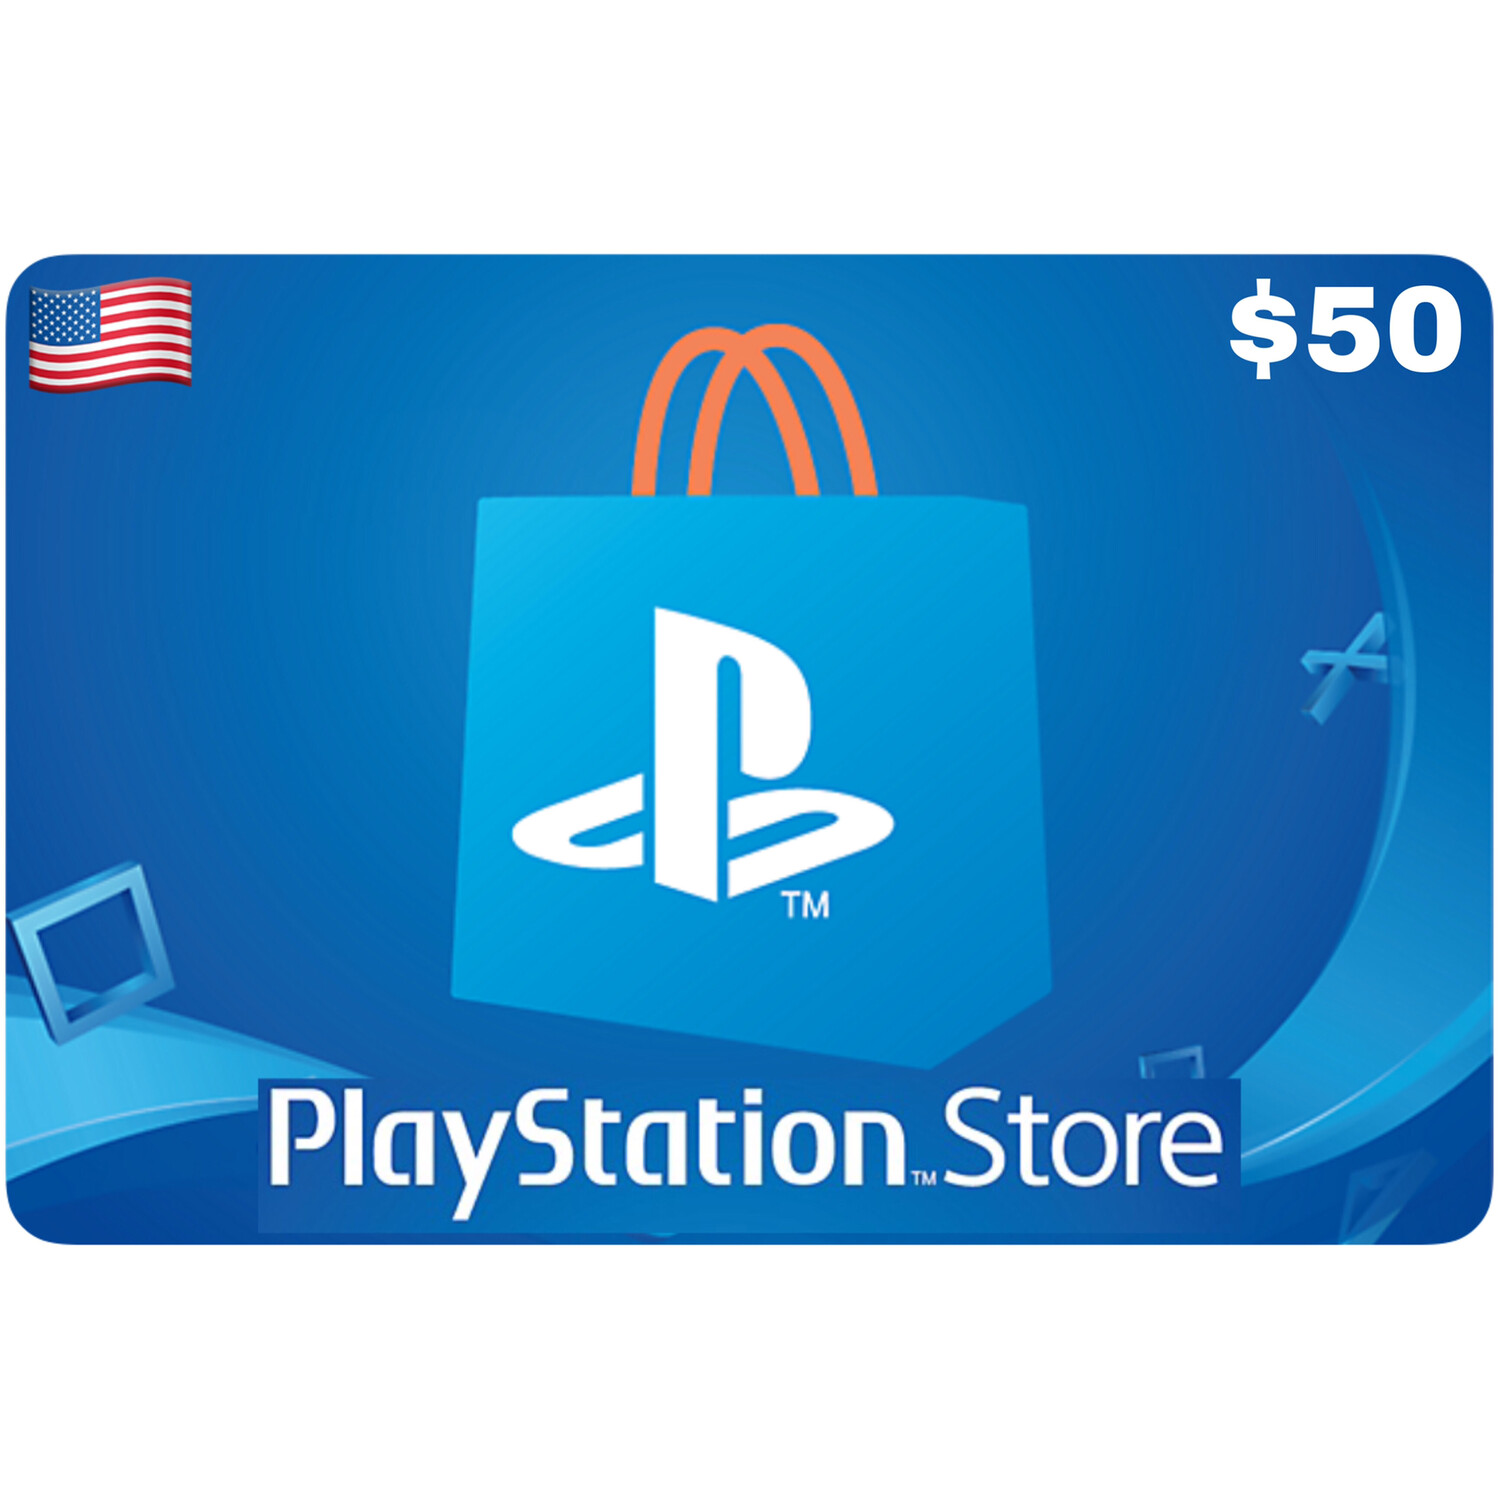 Playstation Store Gift Card US $50